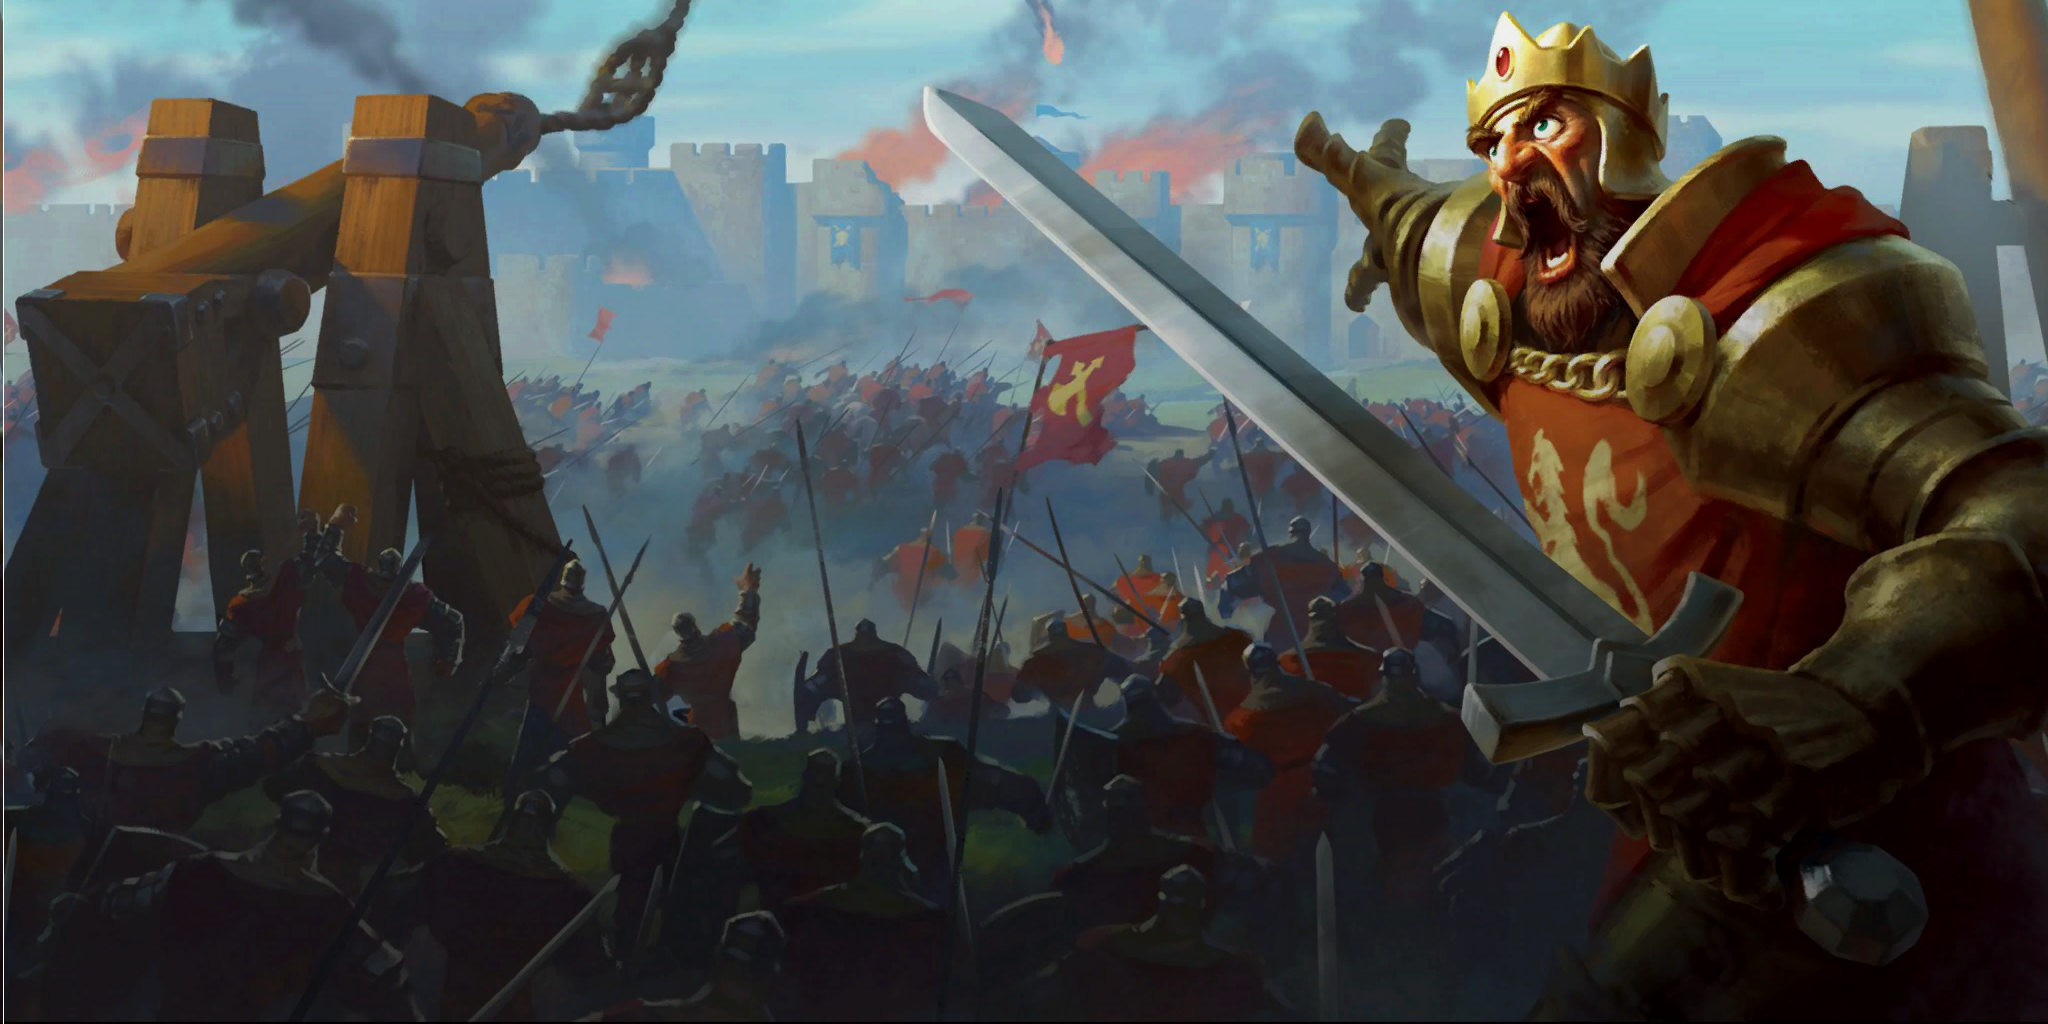 Castle siege age of empires how to beat historical challenge - Historical Challenges Age Of Empires Castle Siege Wiki Fandom Powered By Wikia